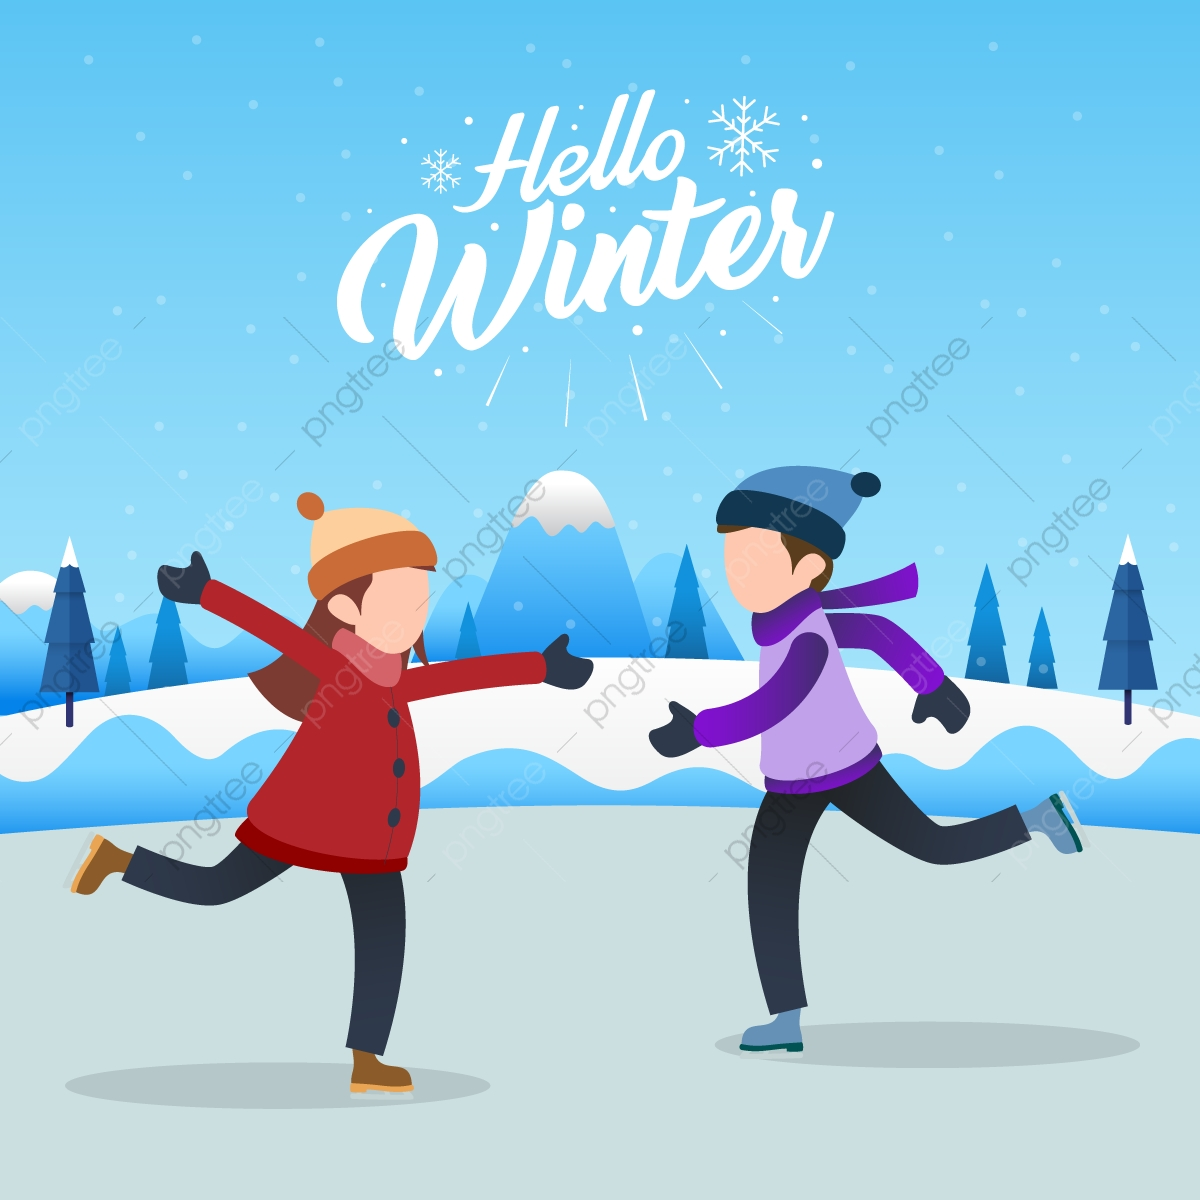 Ice Skating Png Vector Psd And Clipart With Transparent Background For Free Download Pngtree